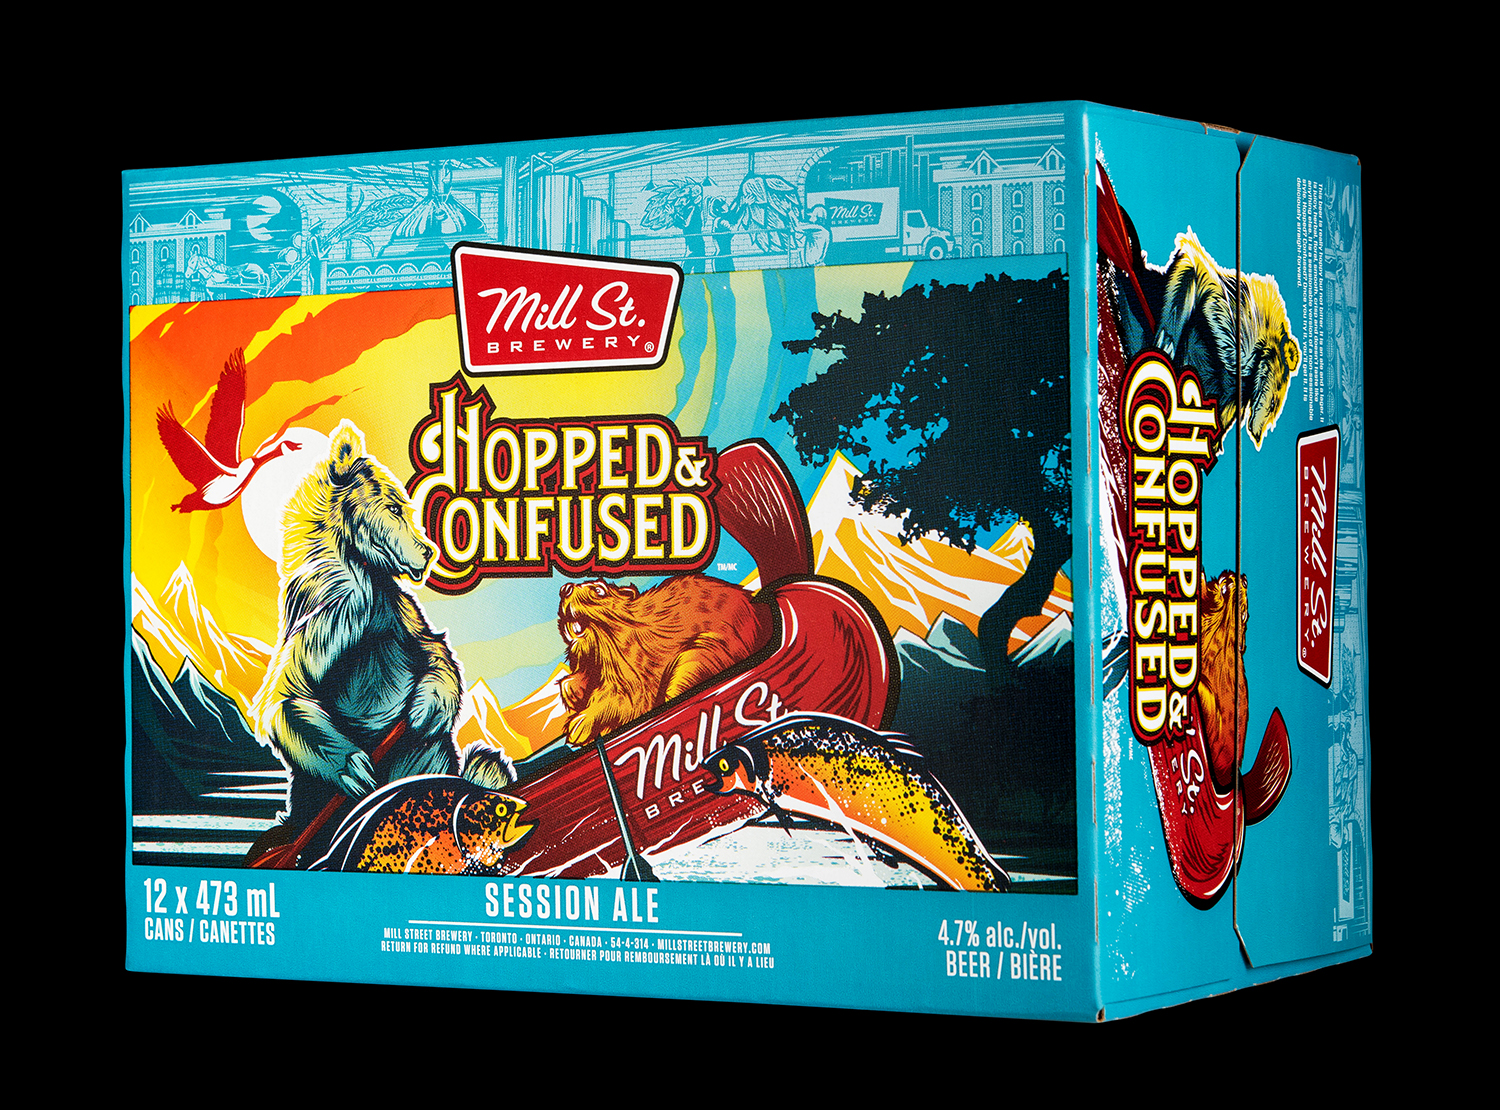 Mill Street Brewing Branding and Packaging 2018 Seasonal Release Hopped and Confused Session Ale